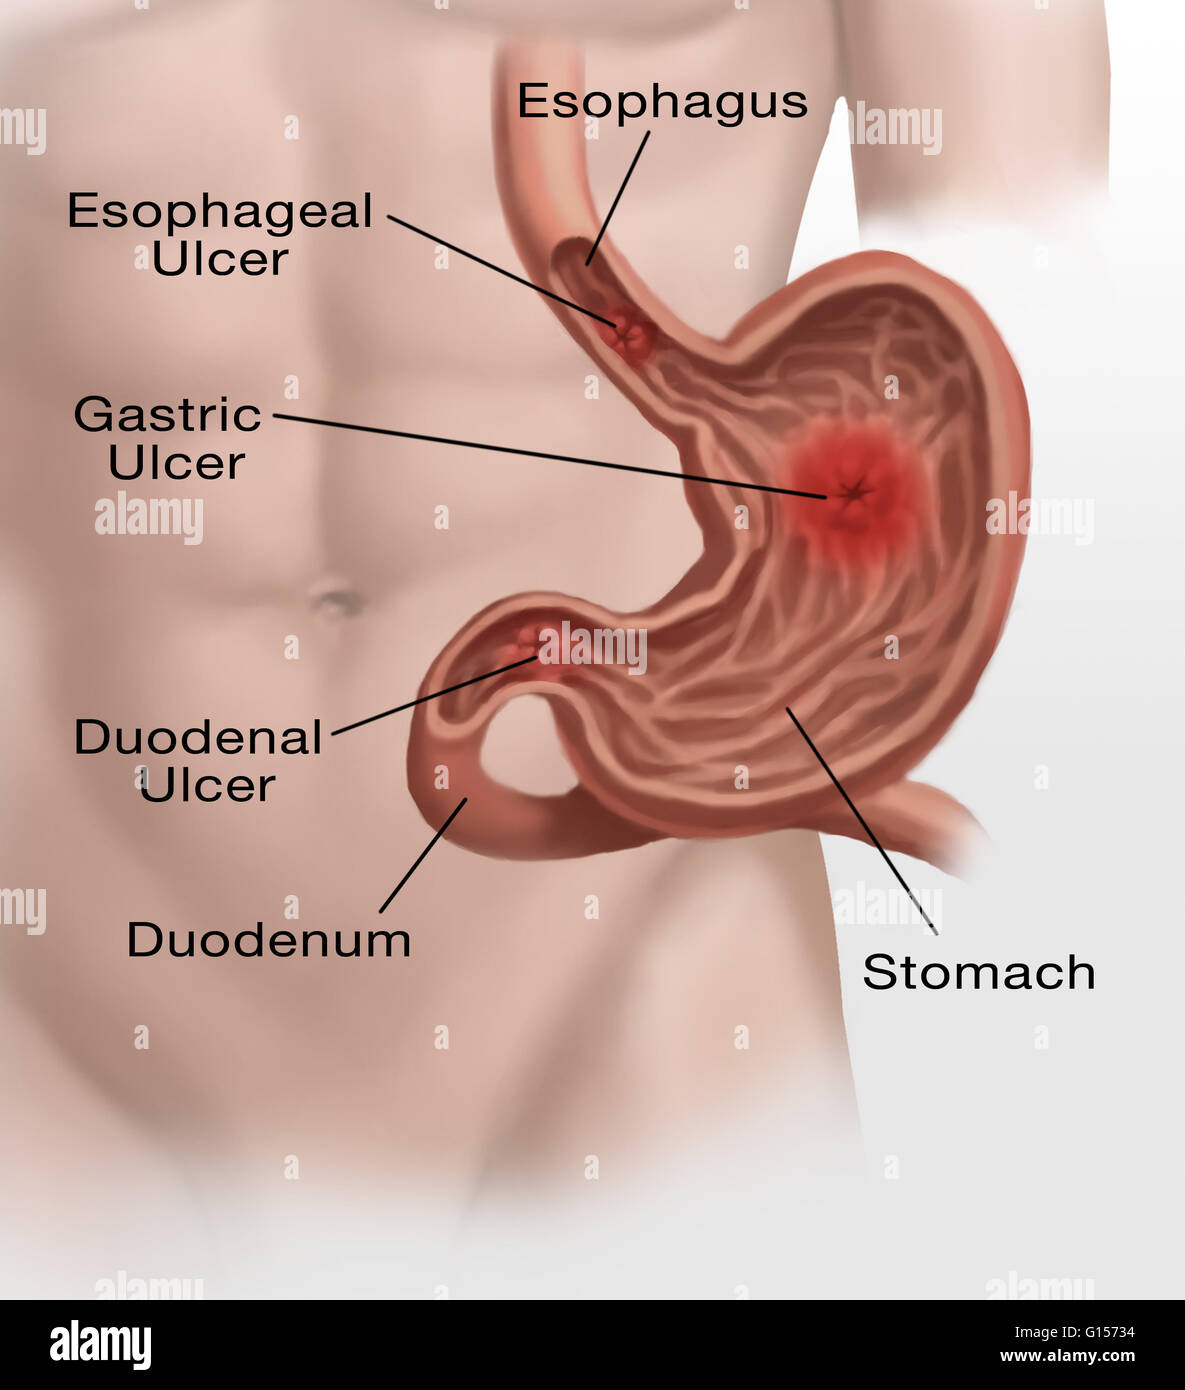 Gastric Ulcers Stock Photos & Gastric Ulcers Stock Images - Alamy